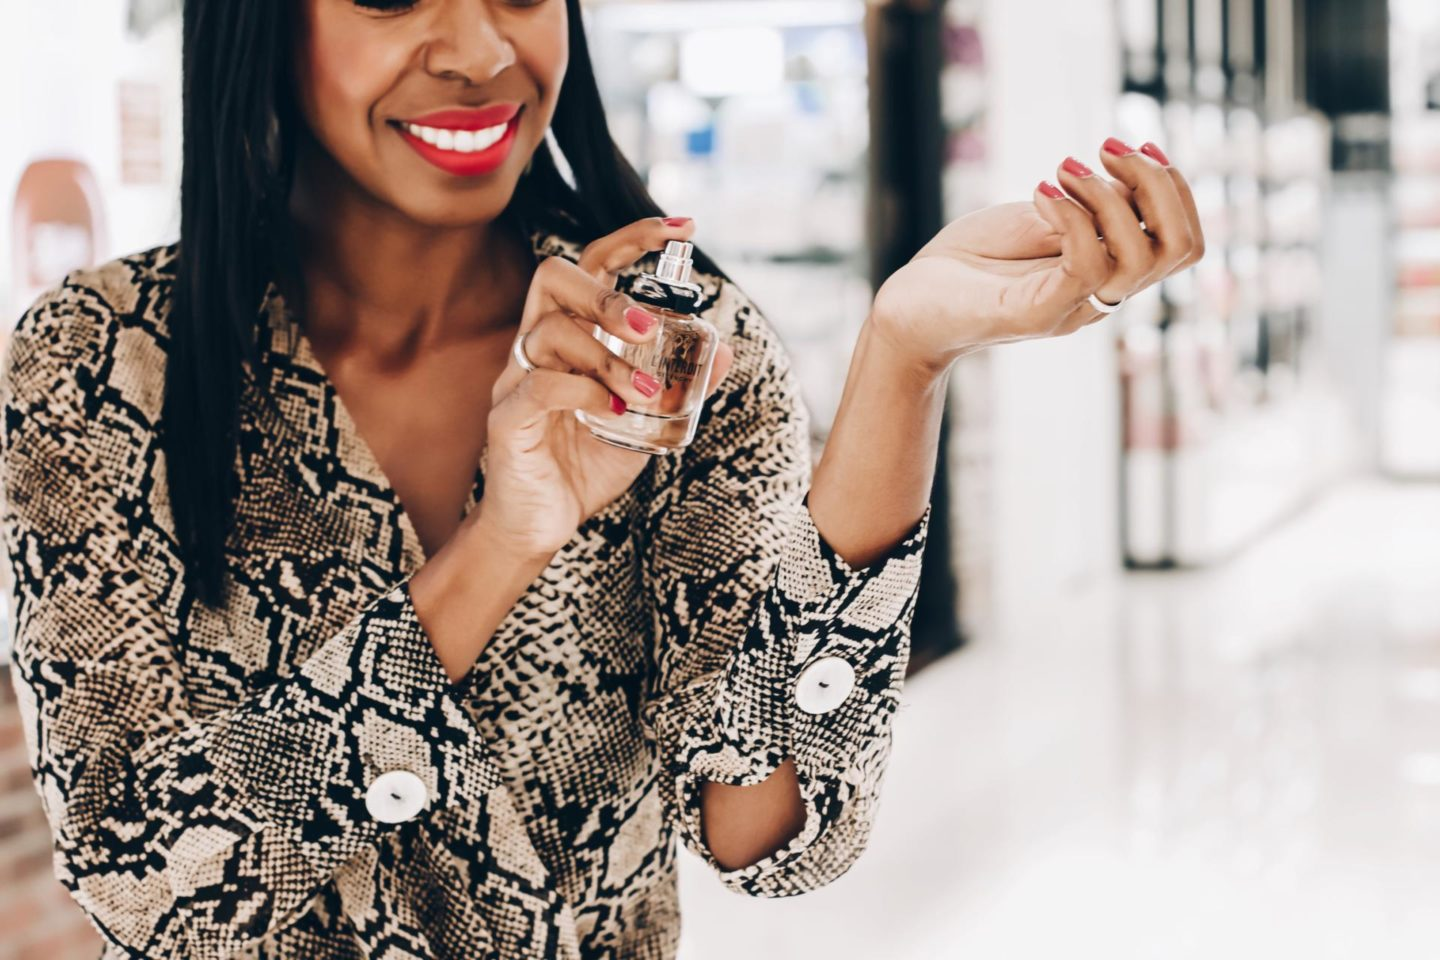 Dominique Baker spraying perfume on her wrist